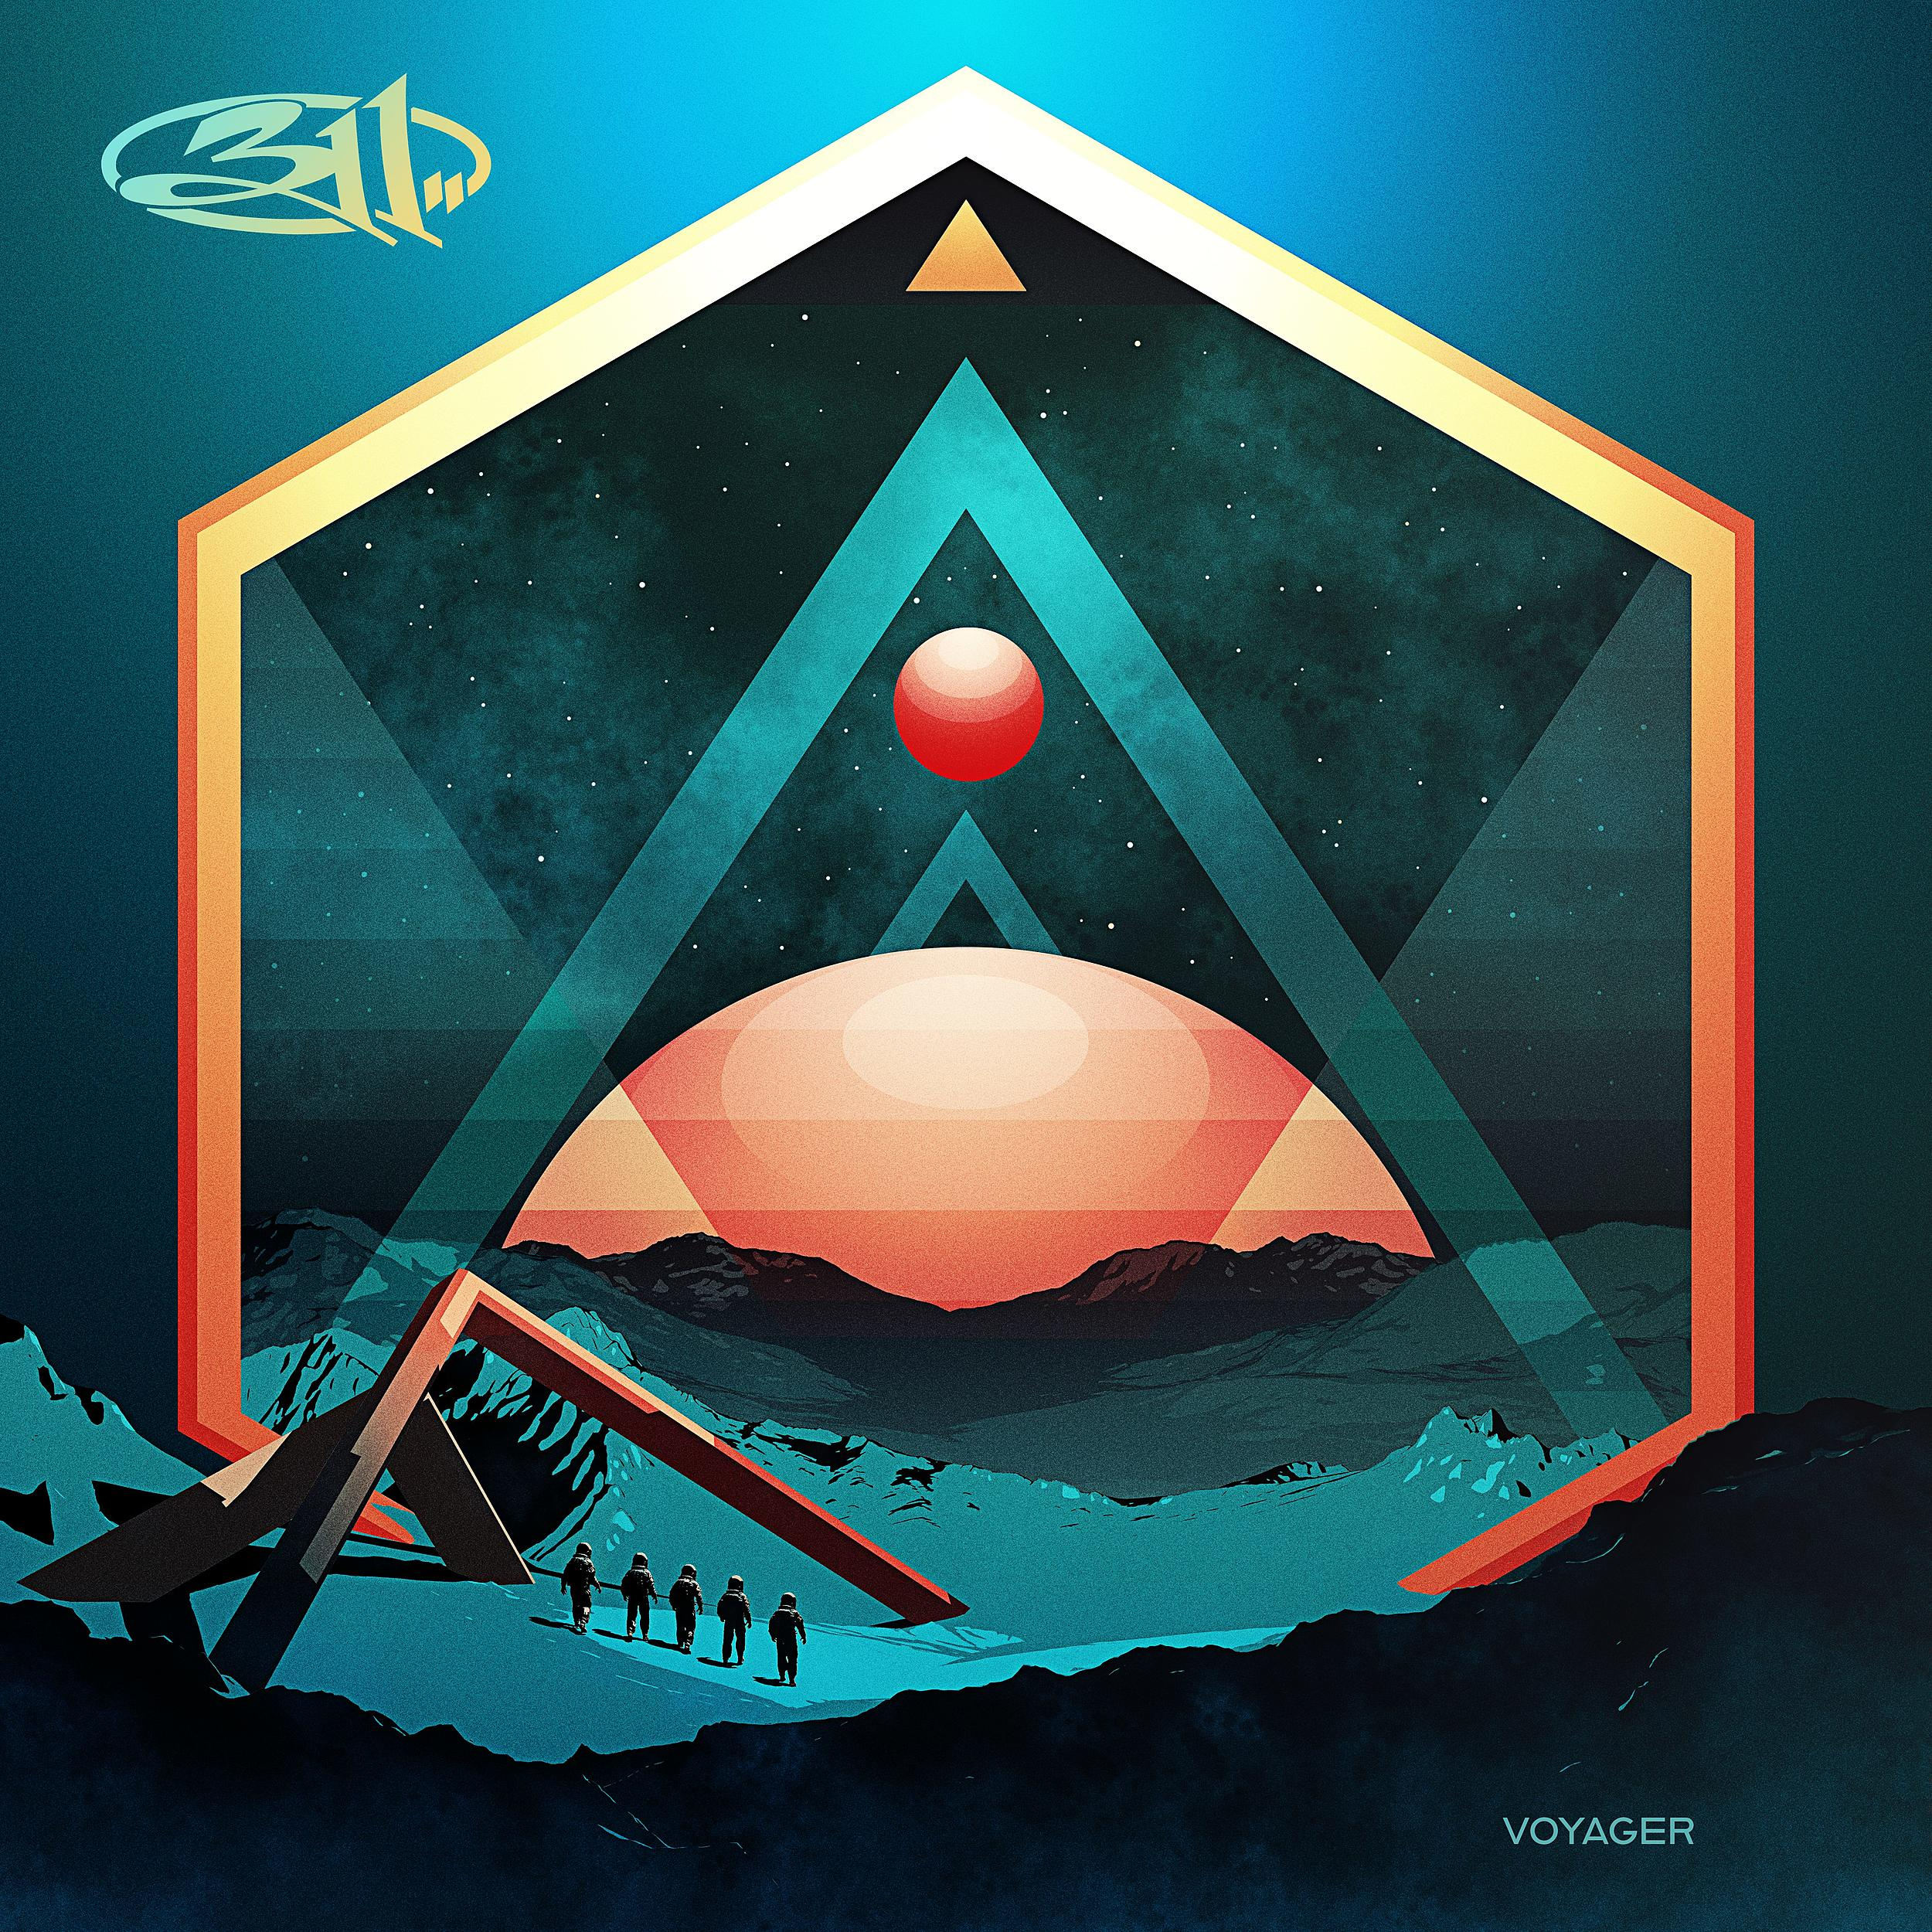 311 Celebrates Voyager Release With Free Live Concert Stream